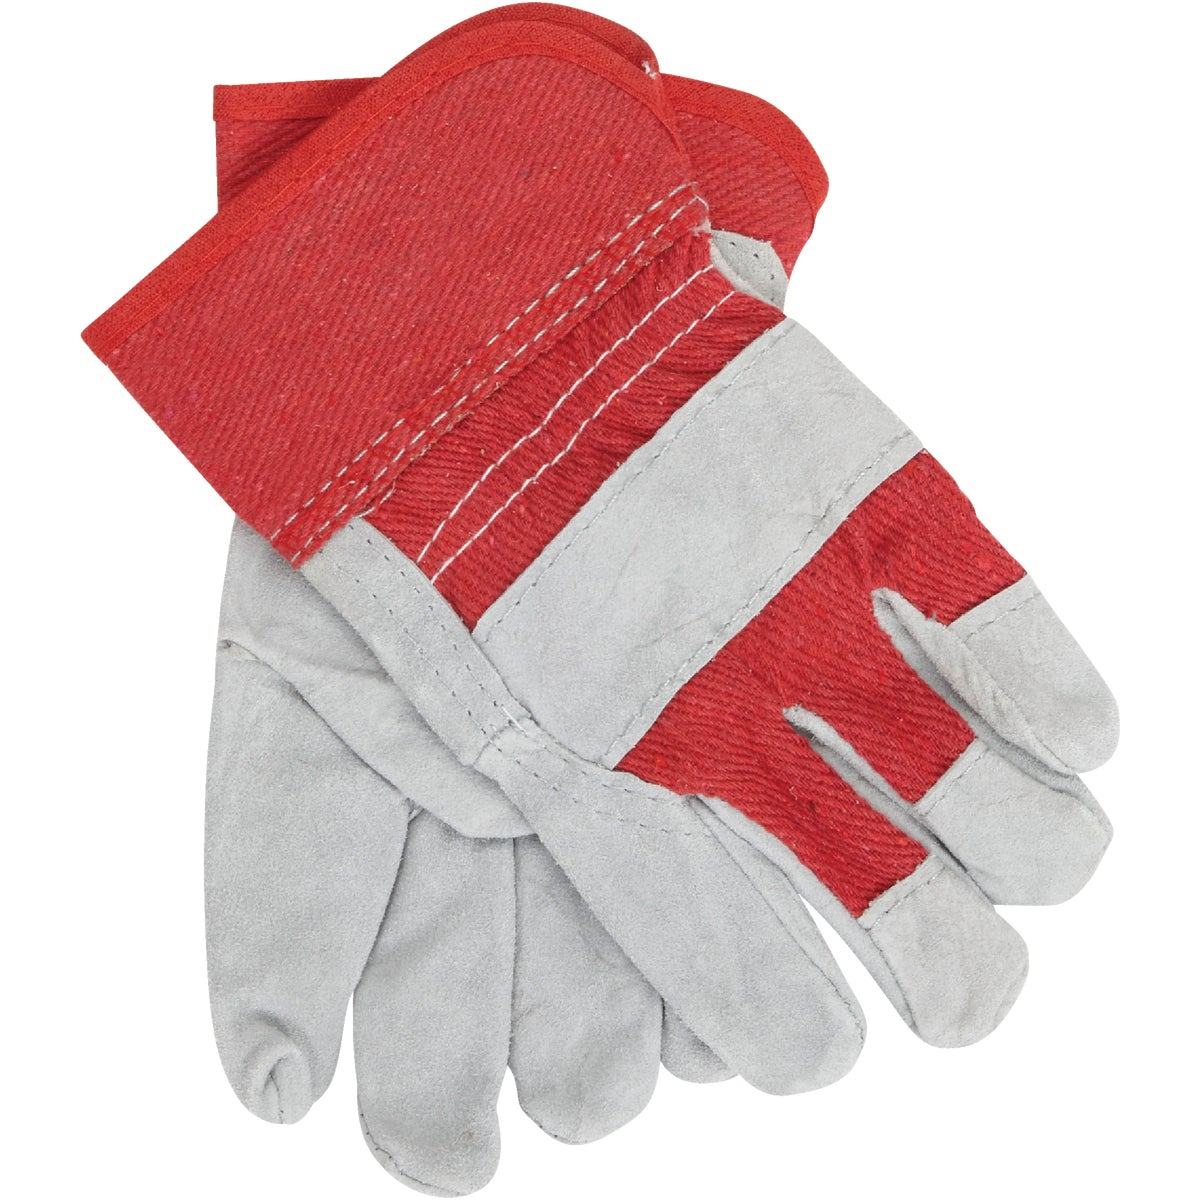 KIDS LEATHER PALM GLOVE